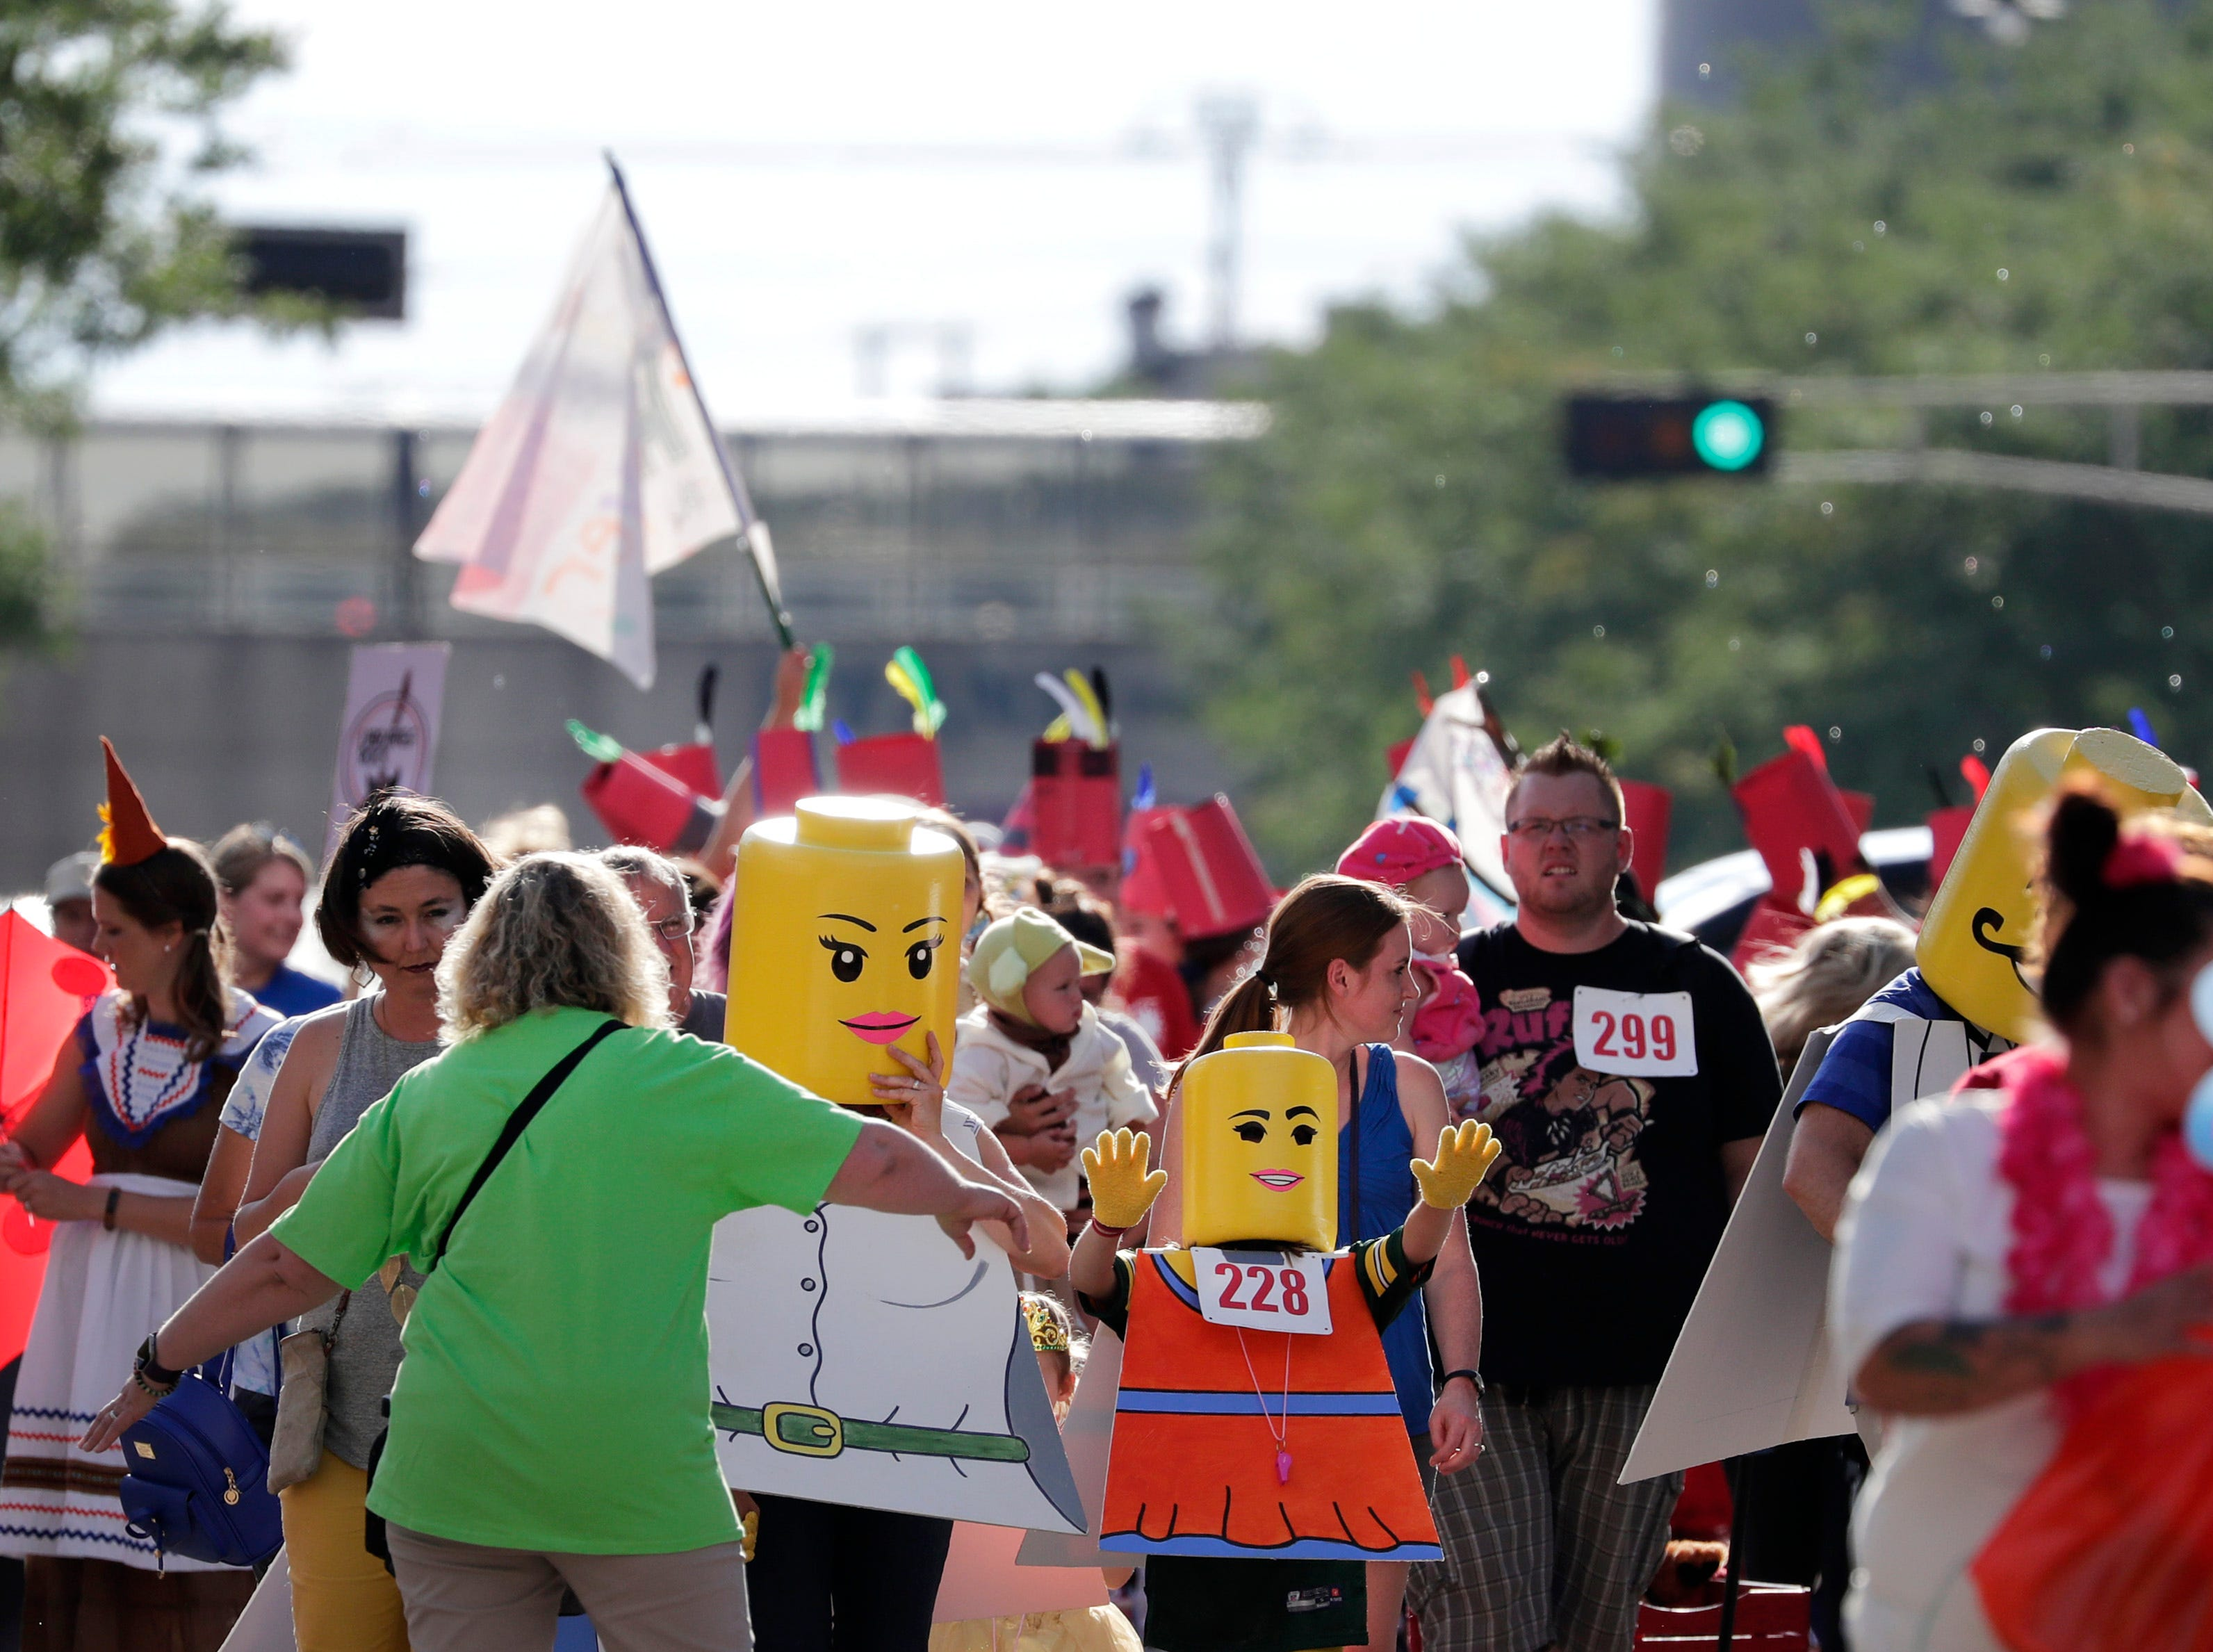 A family wearing Lego costumes makes their way down College Avenue during the 10th annual ChildrenÕs Parade Wednesday, July 25, 2018, in Appleton, Wis. Danny Damiani/USA TODAY NETWORK-Wisconsin